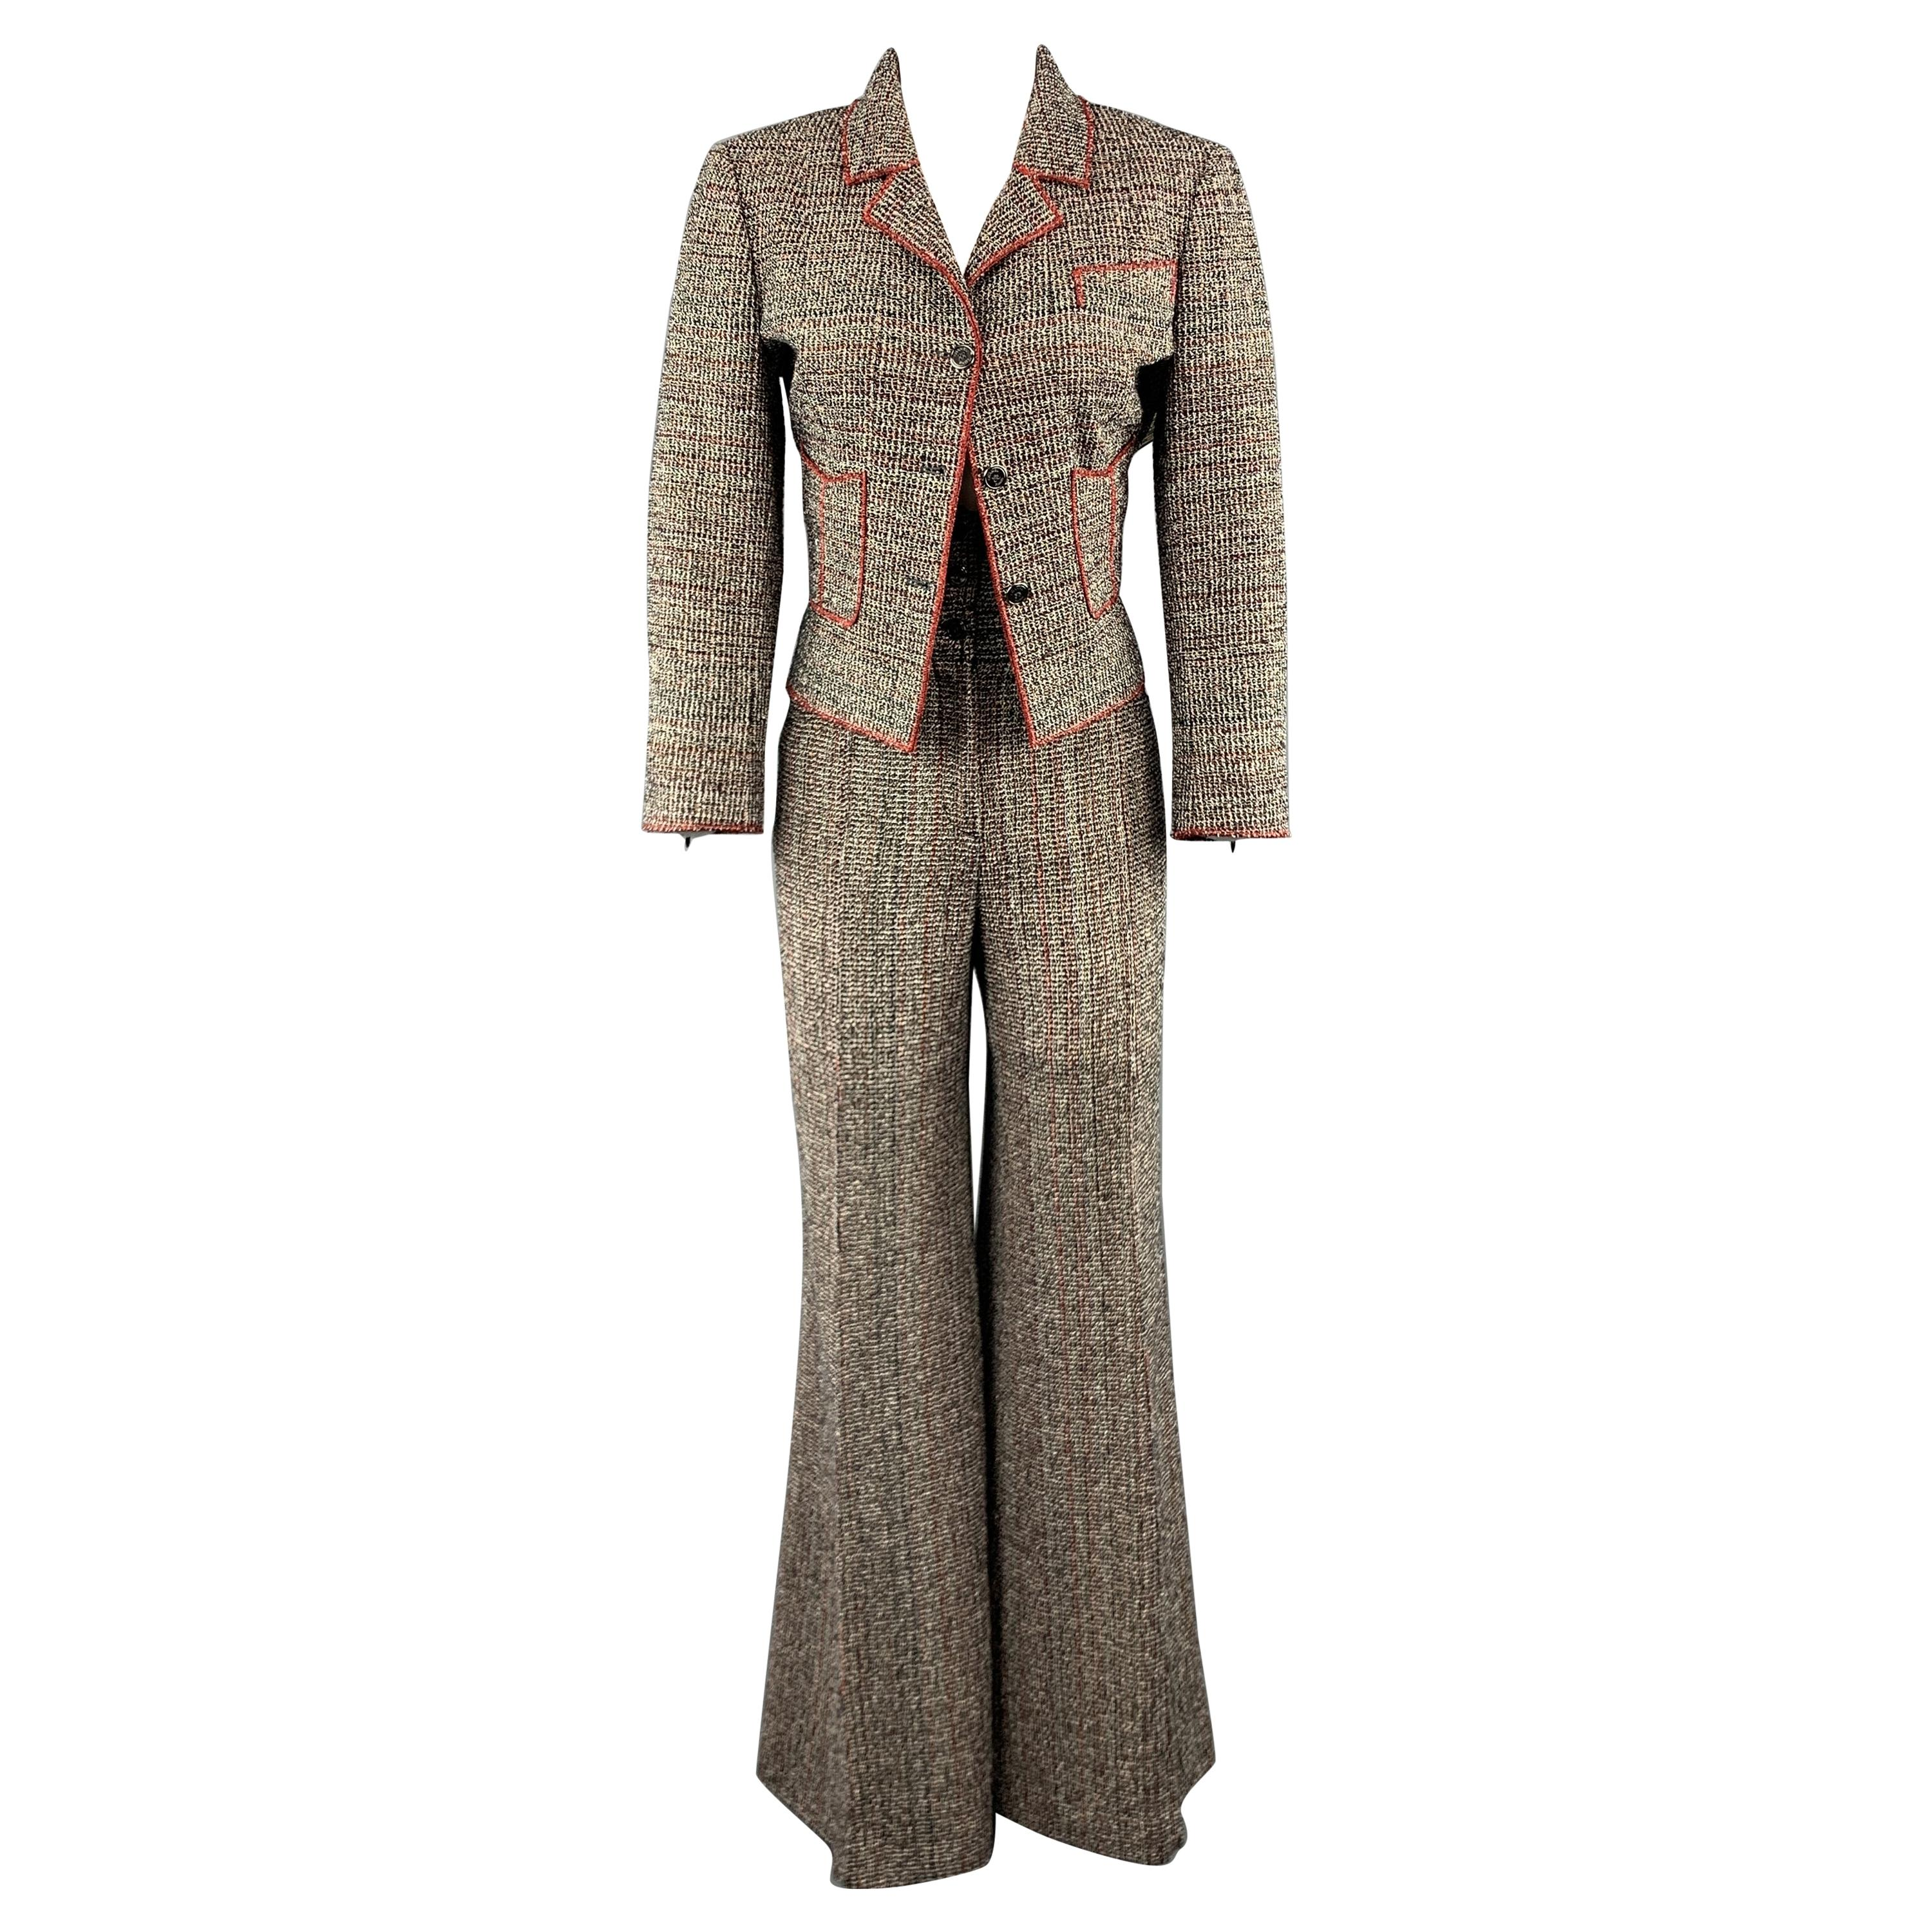 0a47f7af1 Vintage Chanel Suits, Outfits and Ensembles - 326 For Sale at 1stdibs